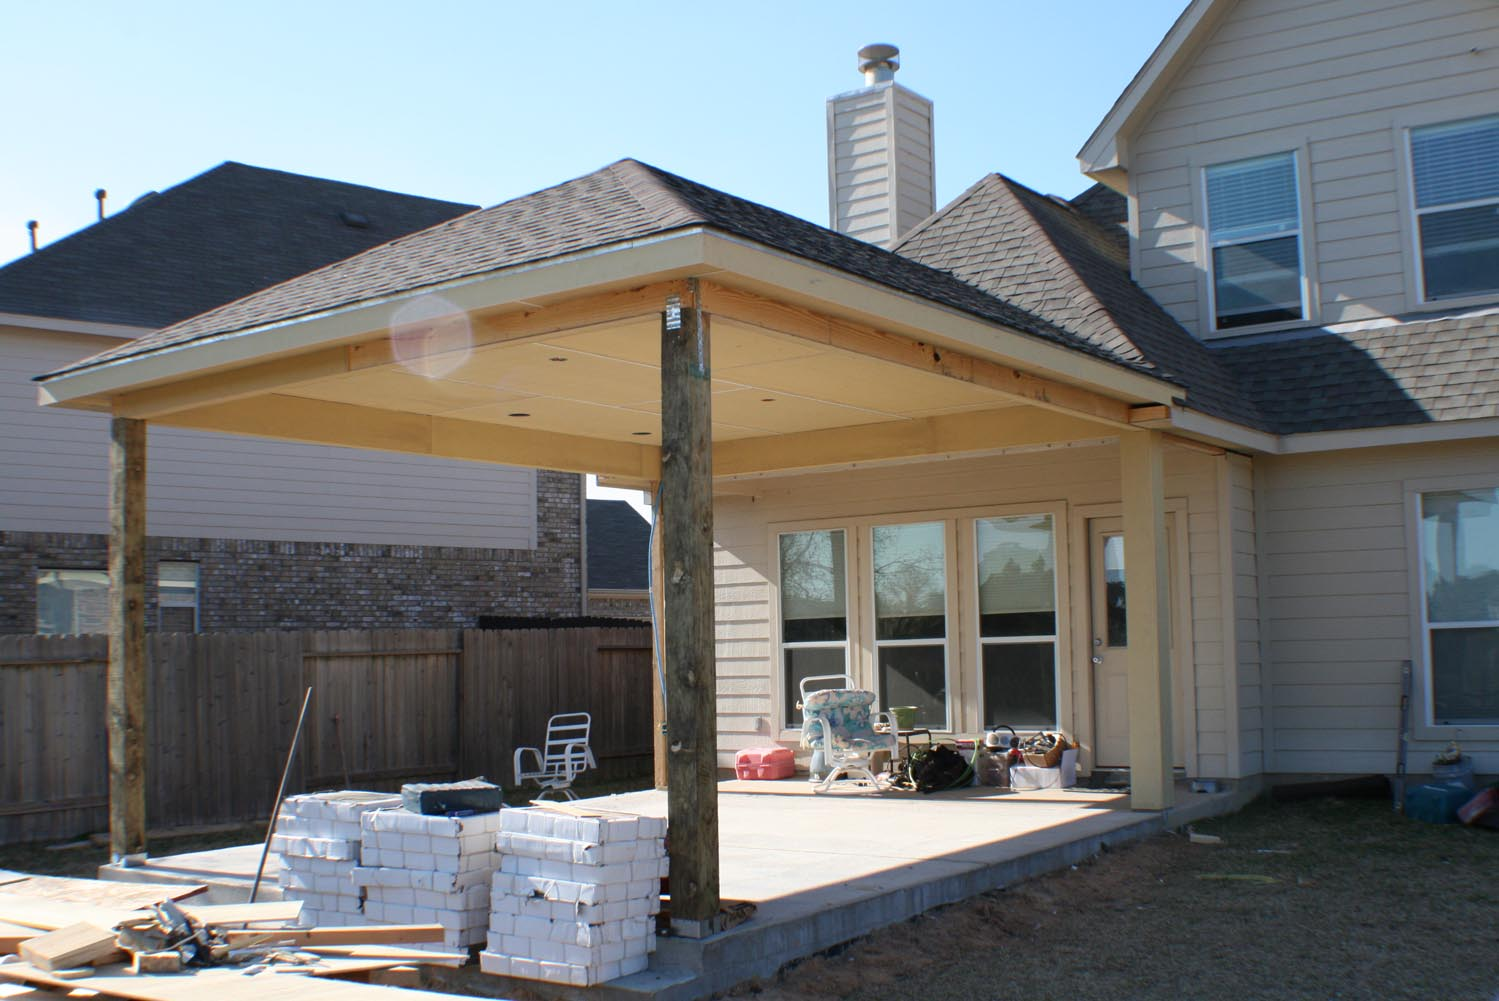 16 by 20 Patio Cover + Outdoor Kitchen - HHI Patio Covers on Backyard Patio Cover  id=64178